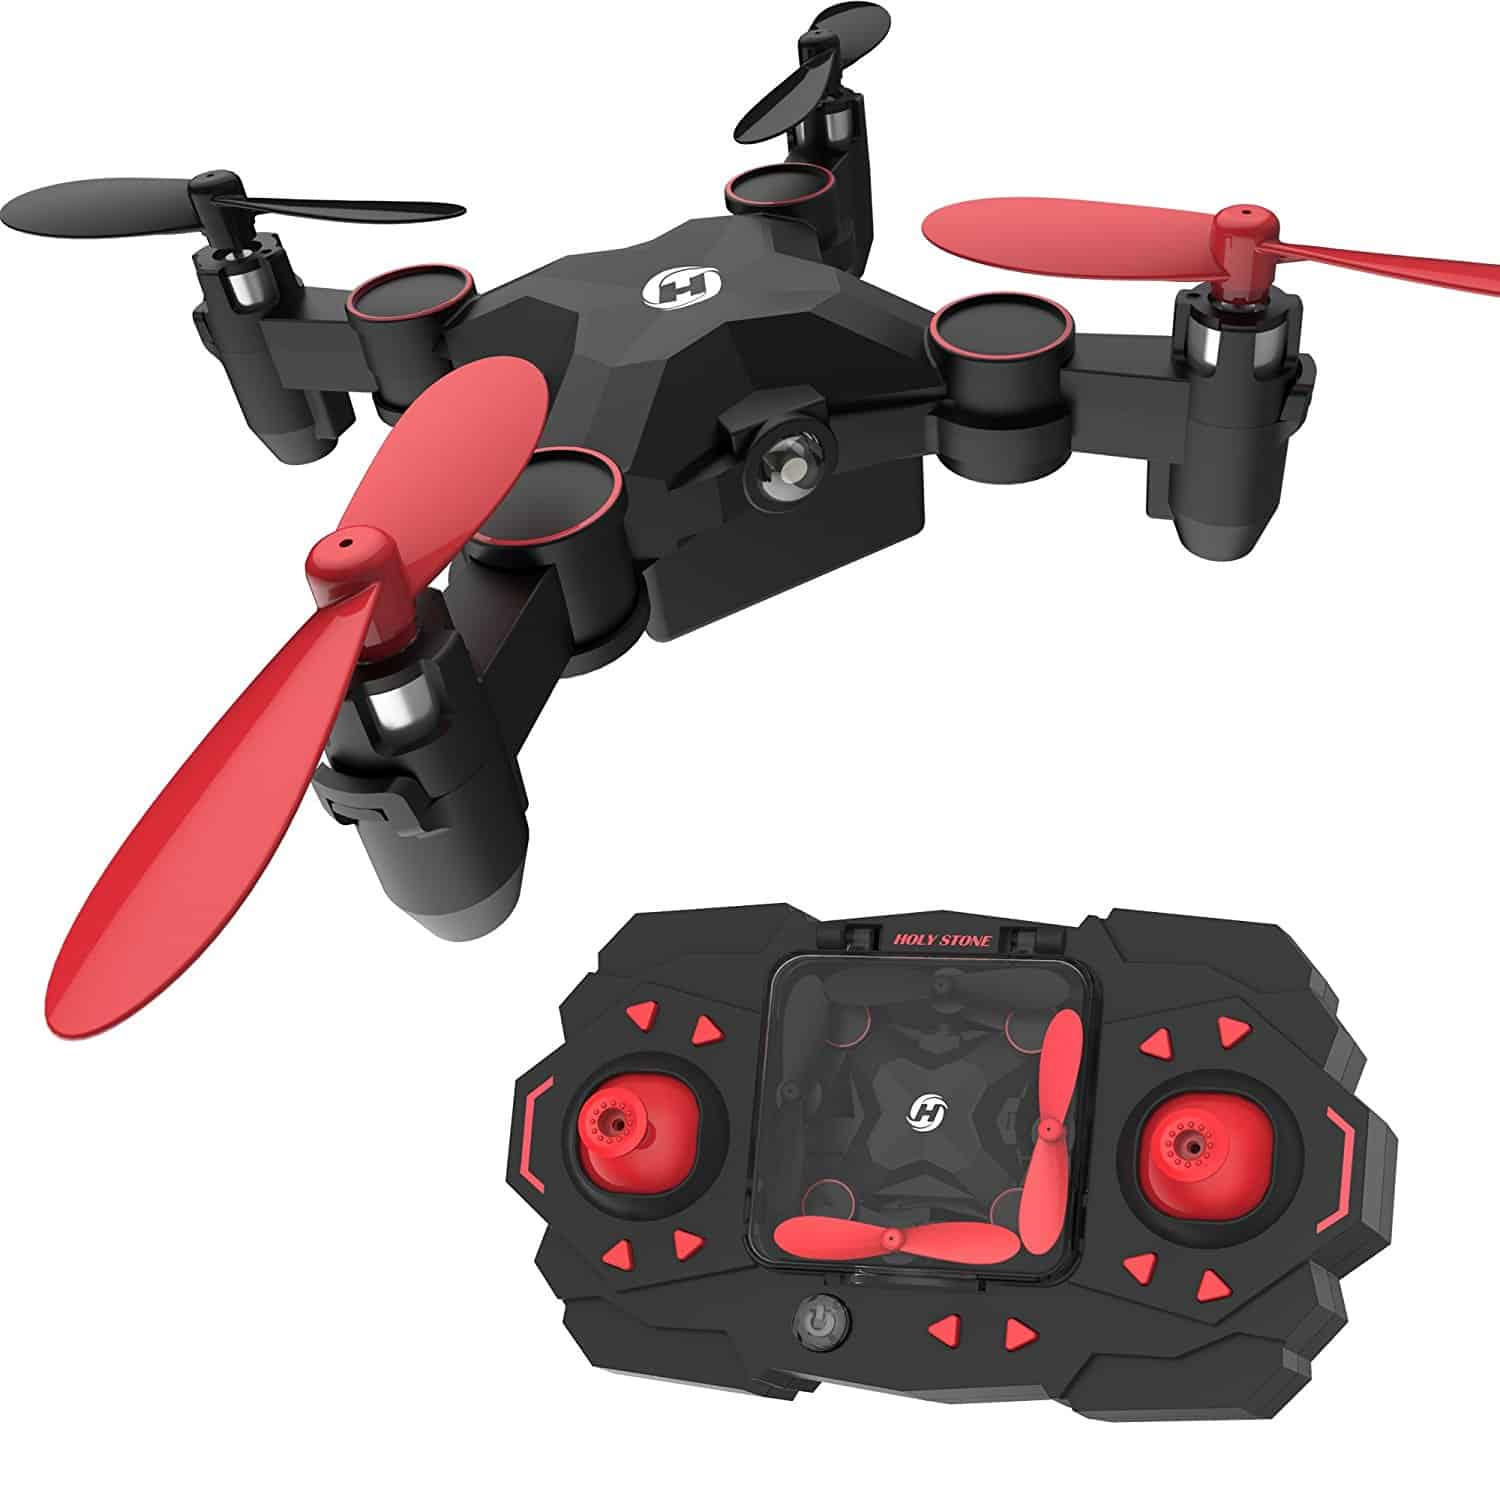 Best Drone For Young Kids